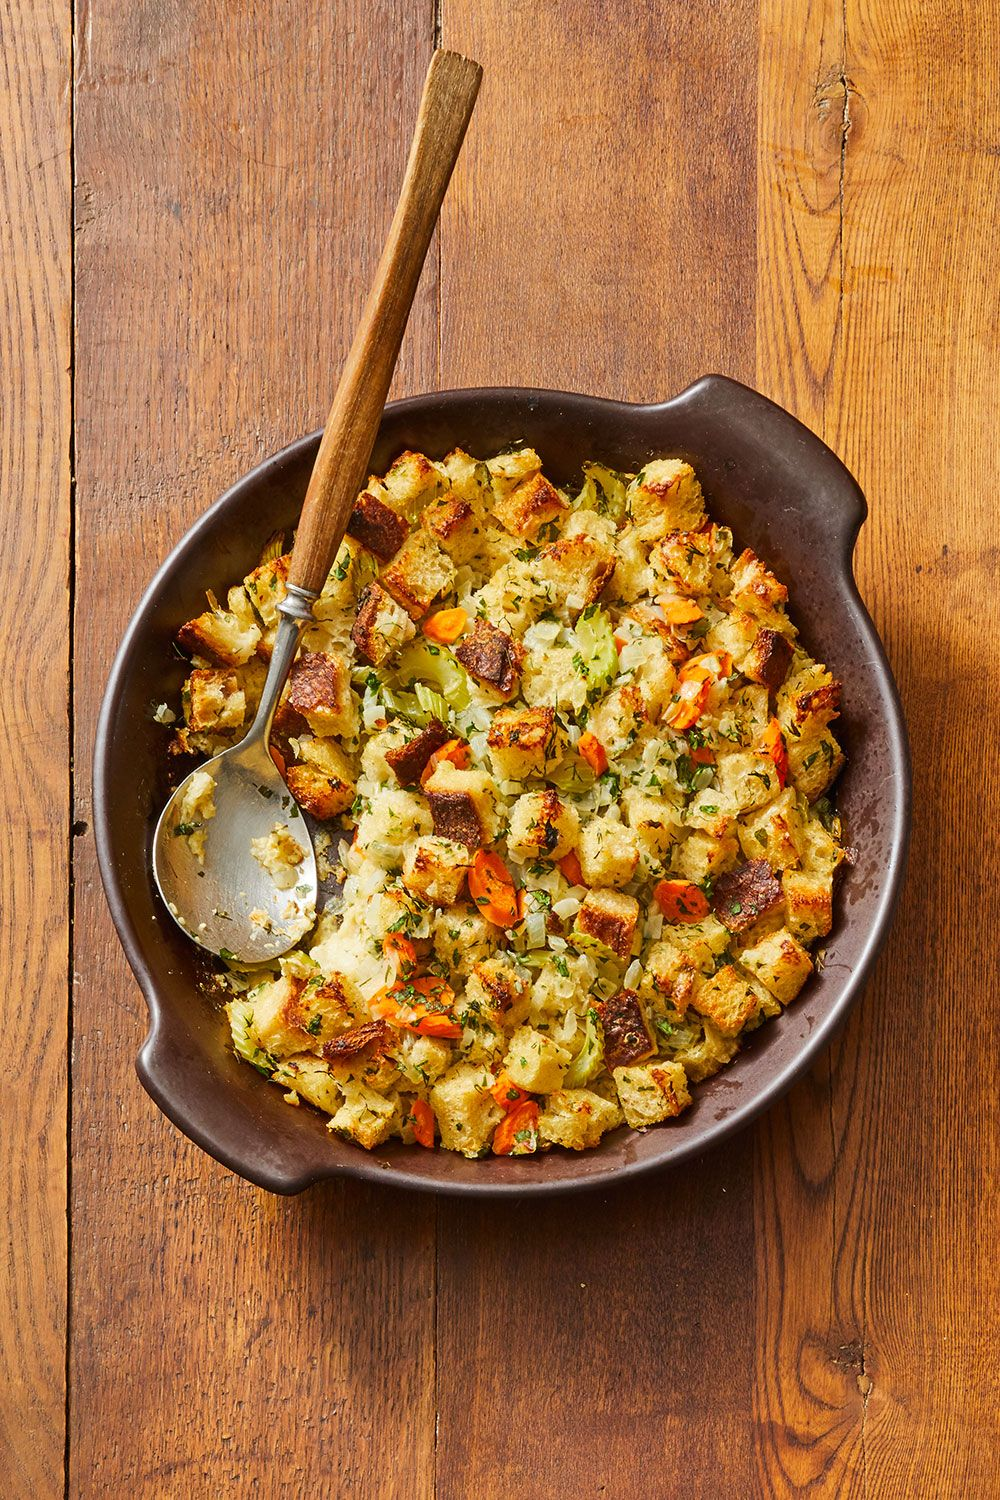 Dill and Parsley Stuffing